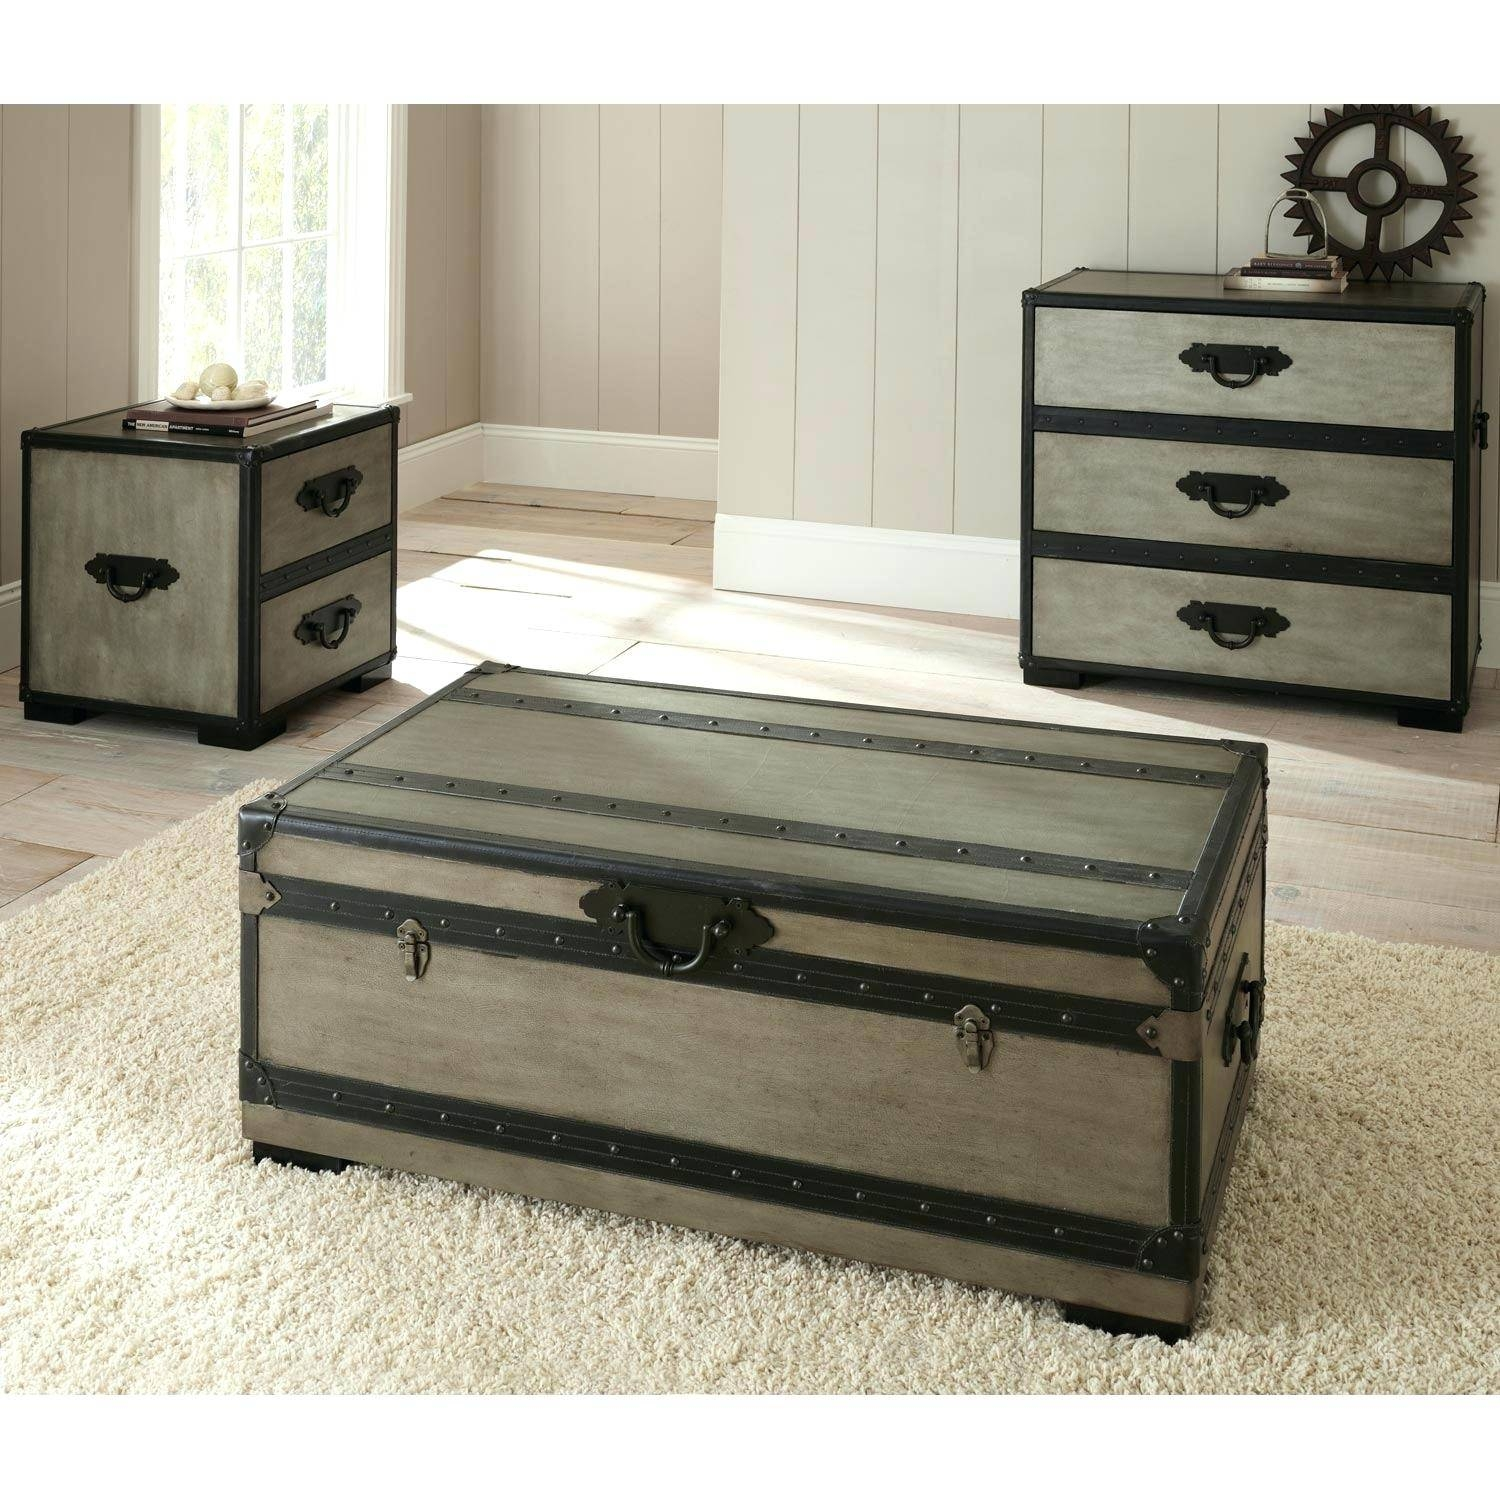 Coffee Table ~ White And Wood Coffee Table Finding Stainless Iron in White Coffee Tables With Baskets (Image 8 of 30)